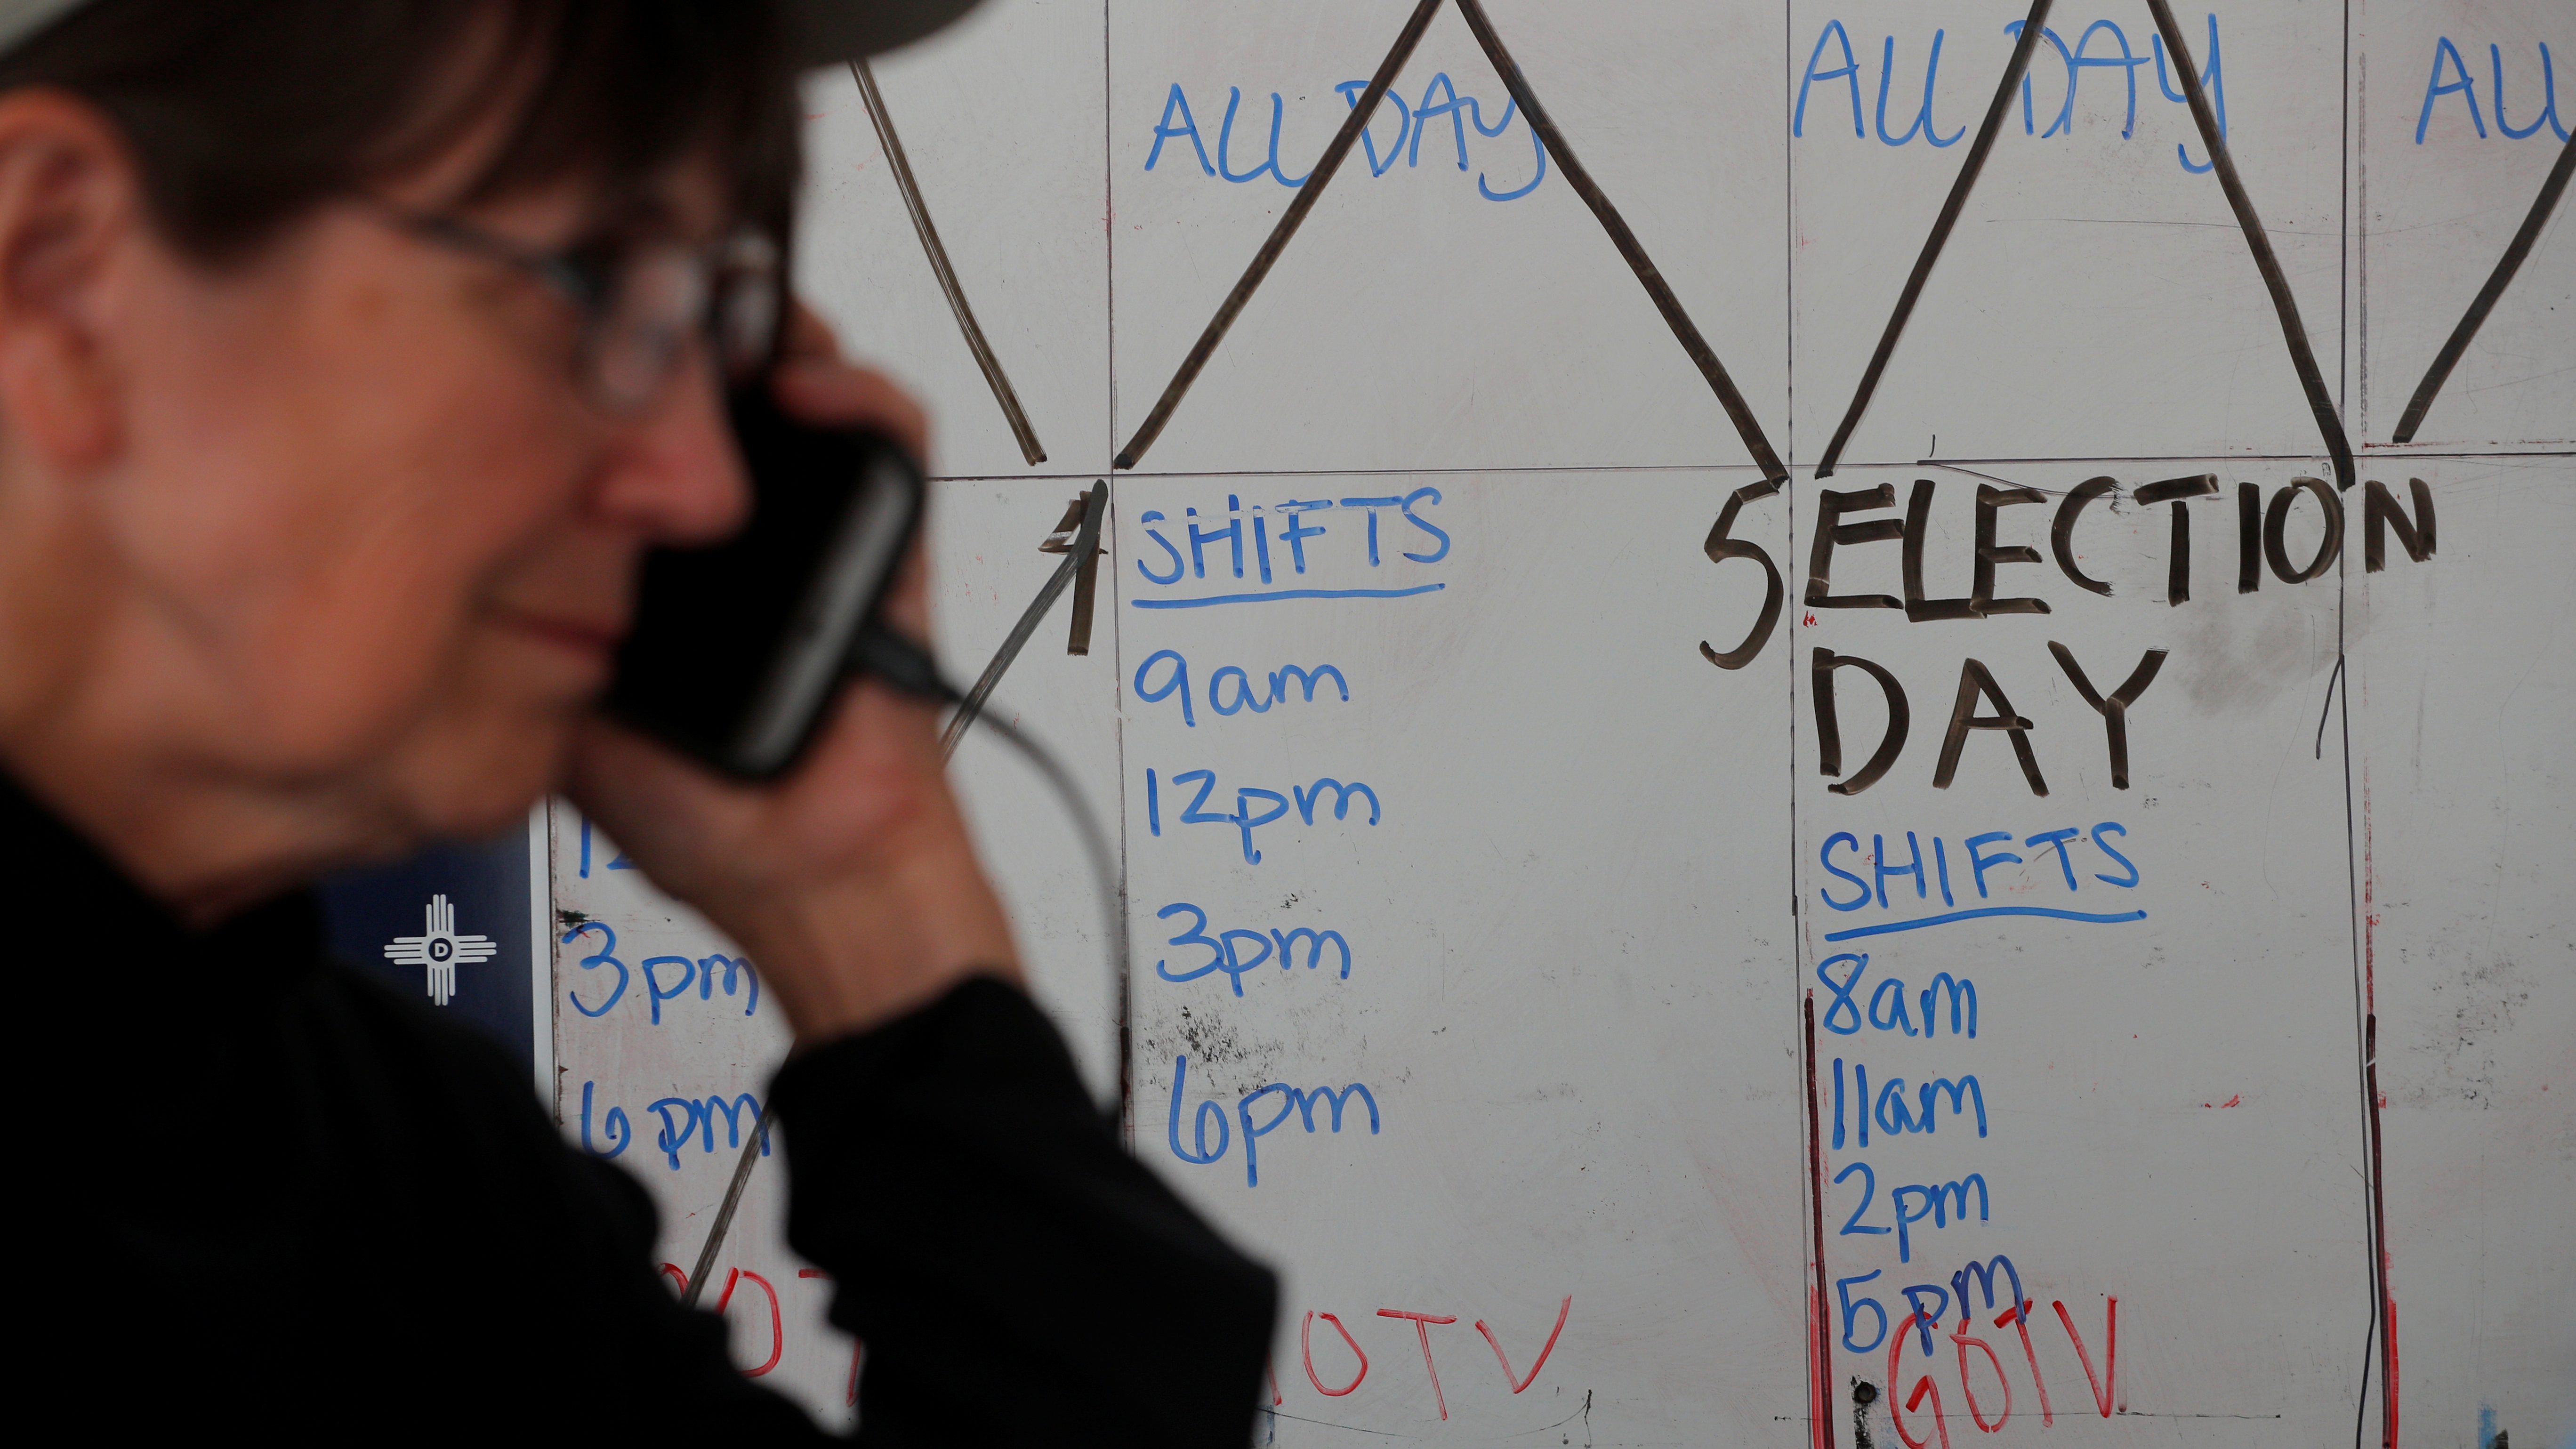 A volunteer makes phone bank calls to voters in front of an election countdown calendar at a Democratic Party office in Albuquerque, New Mexico, U.S., November 5, 2018.